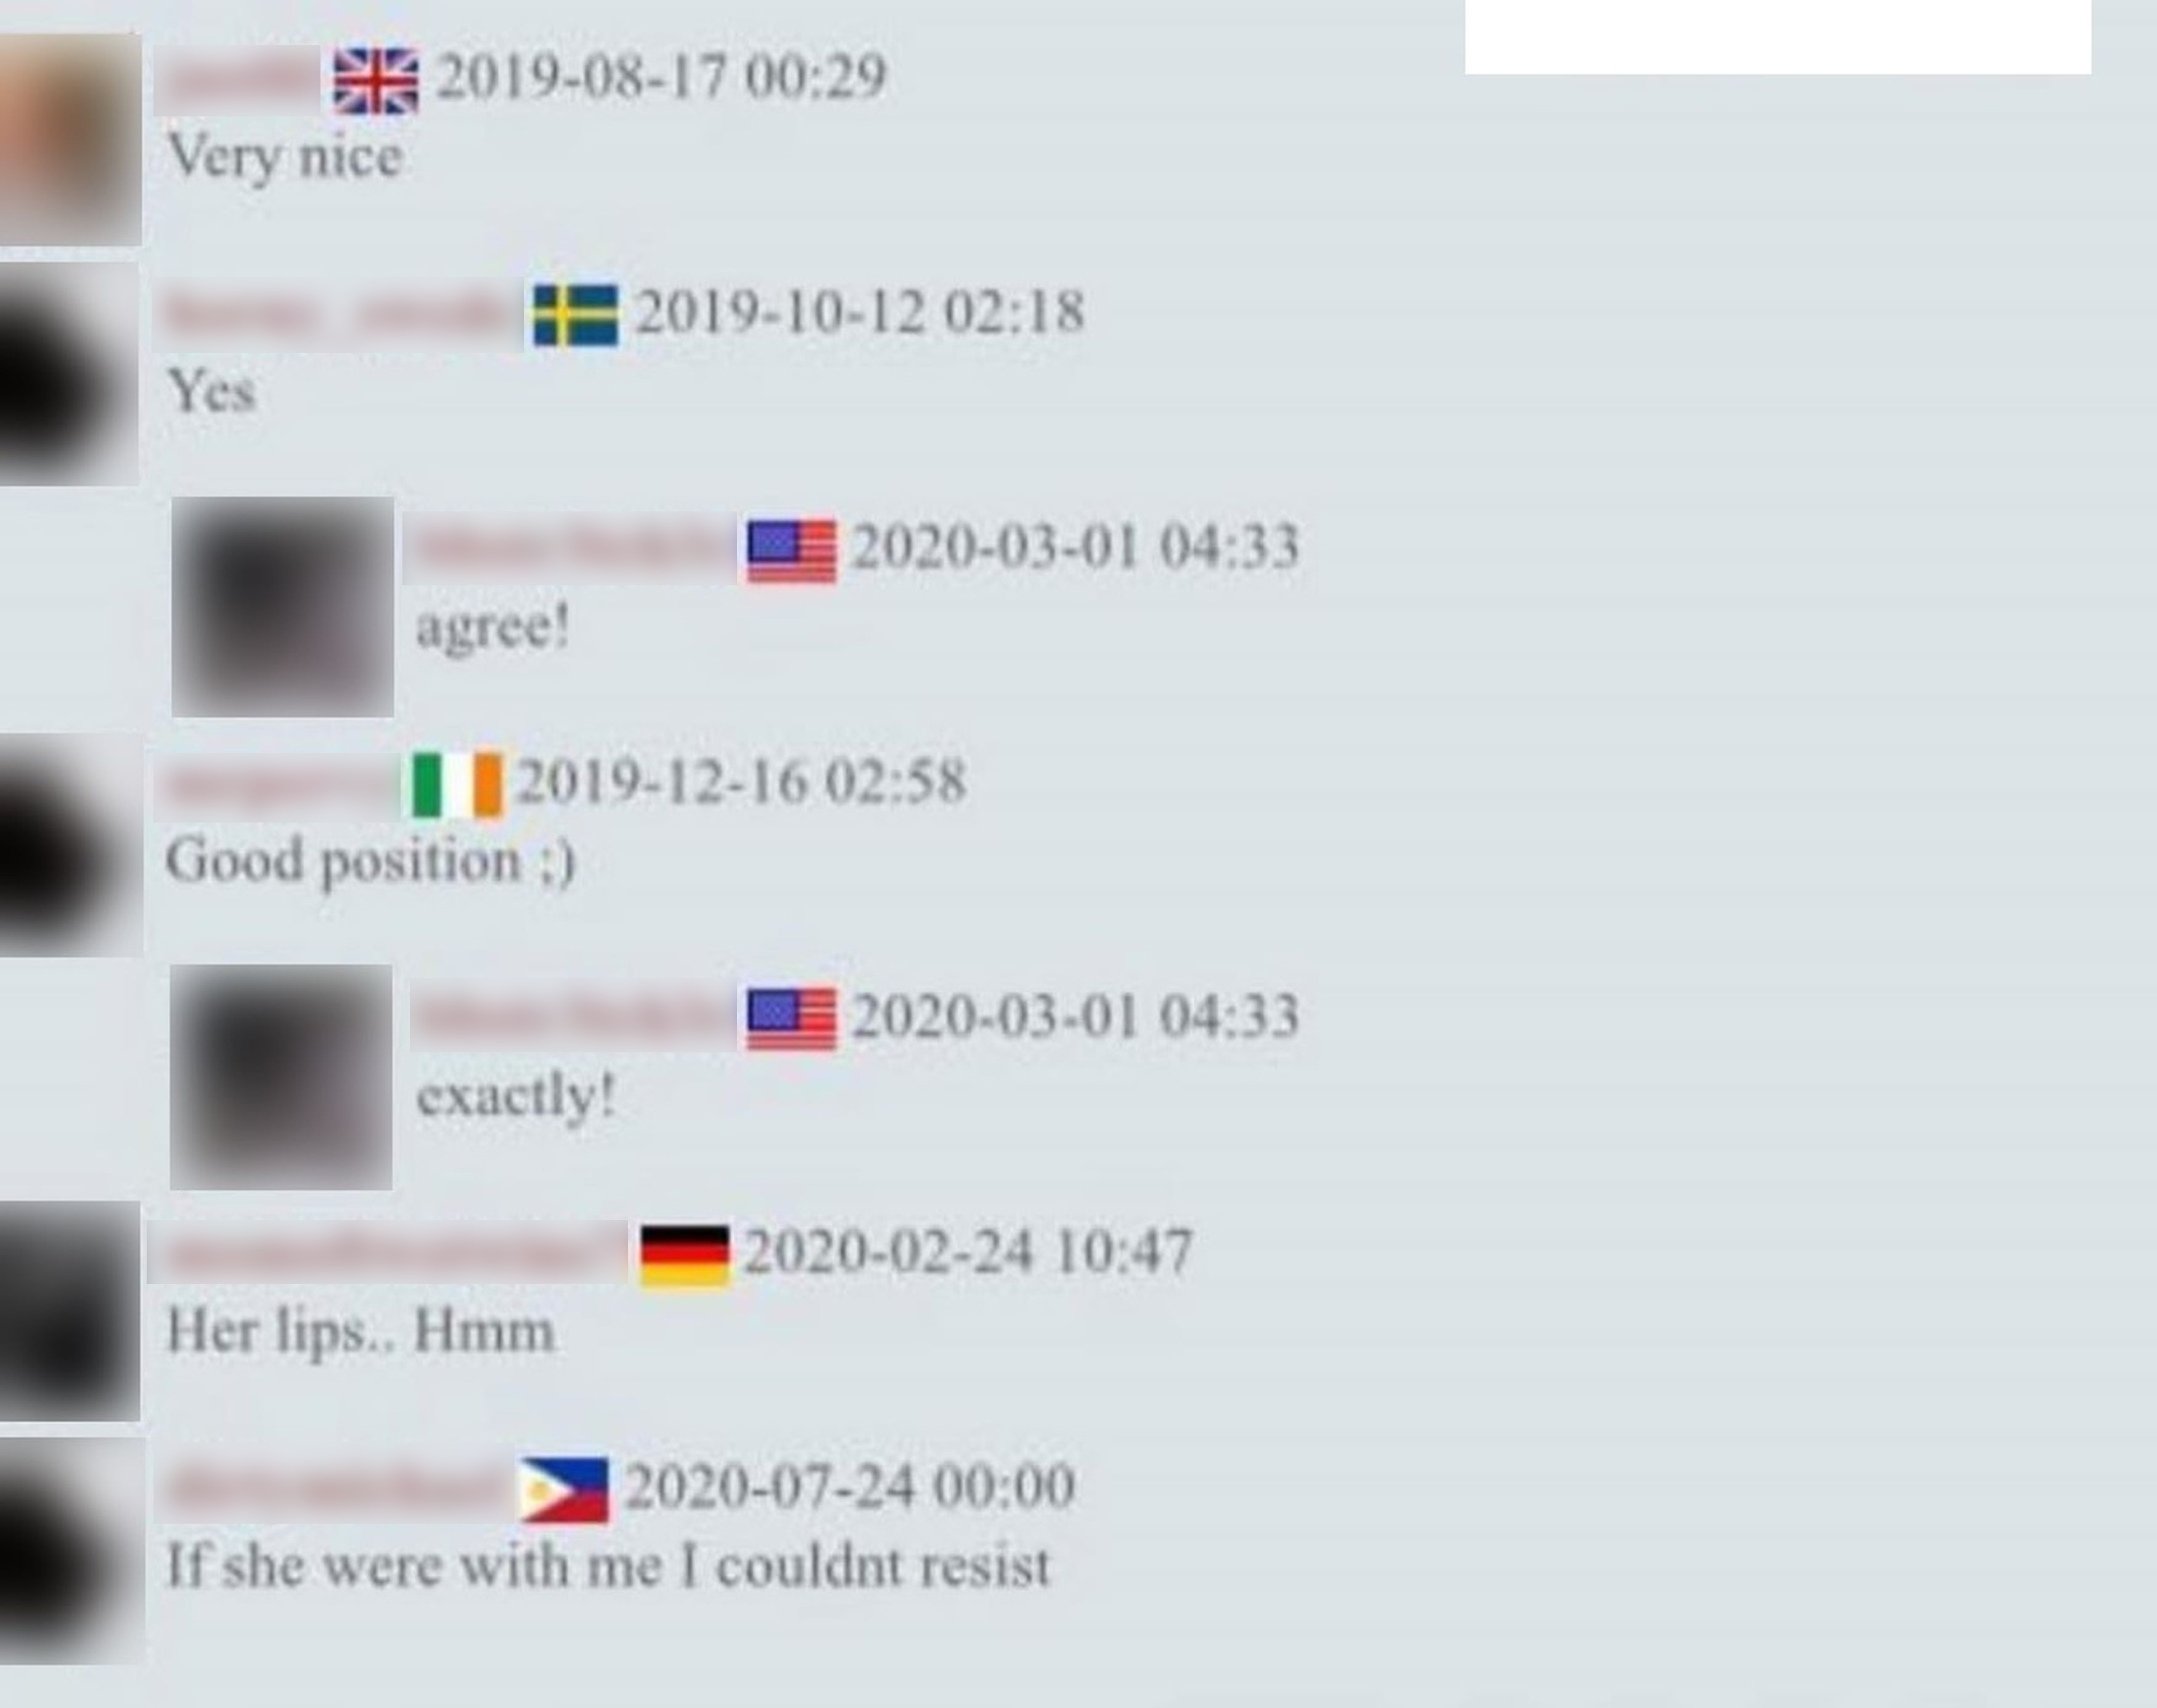 Comments from users of Russian website